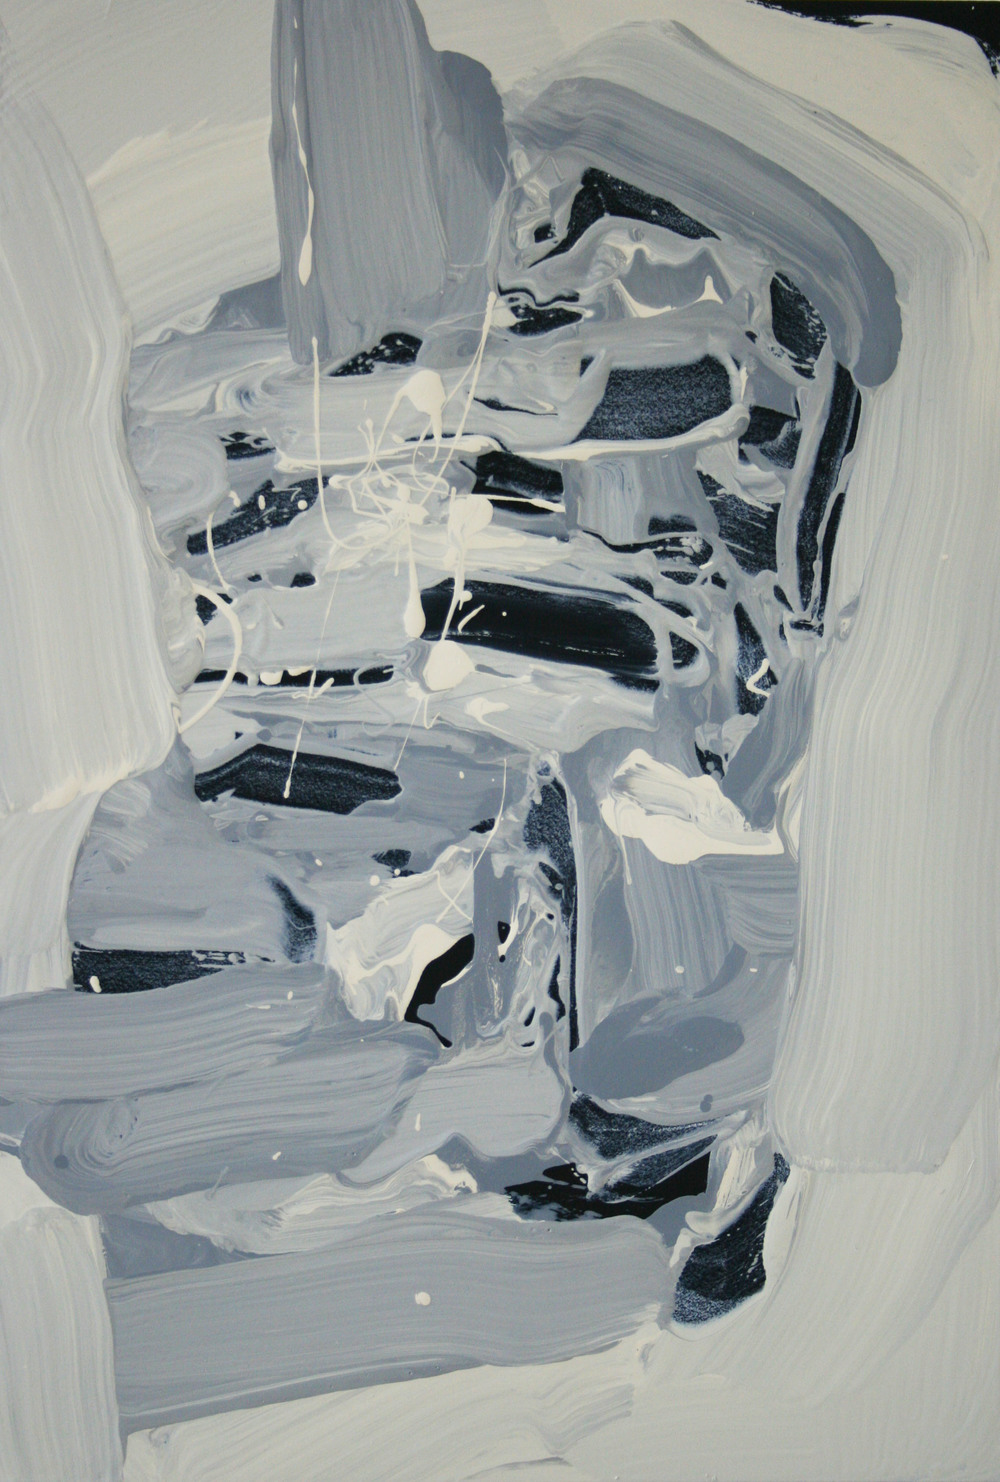 grey painting med 4 2011 oil on lacquered wood 44x30.5cm low res.jpg